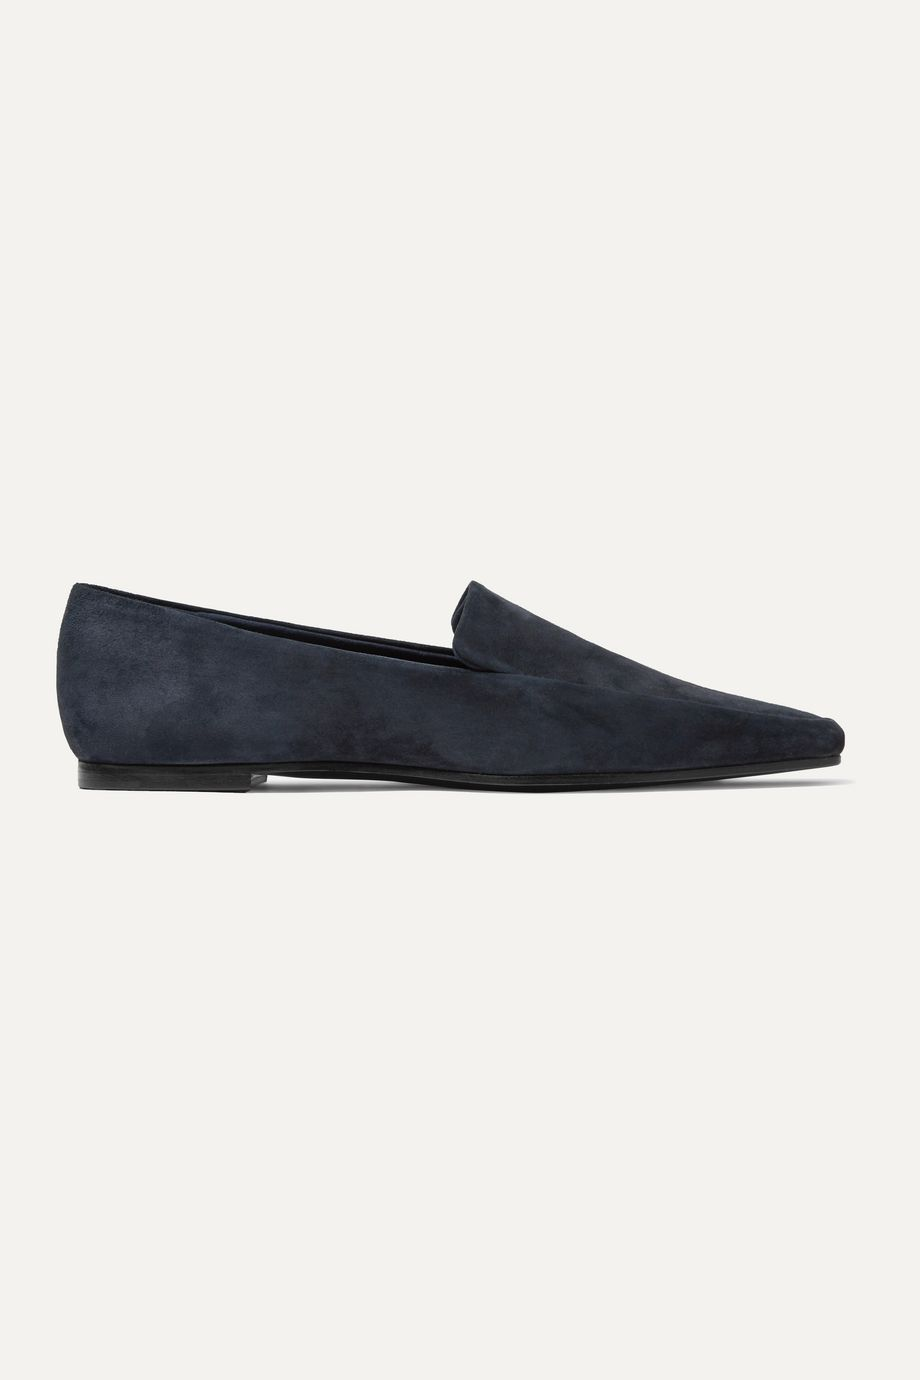 The Row Minimal suede loafers